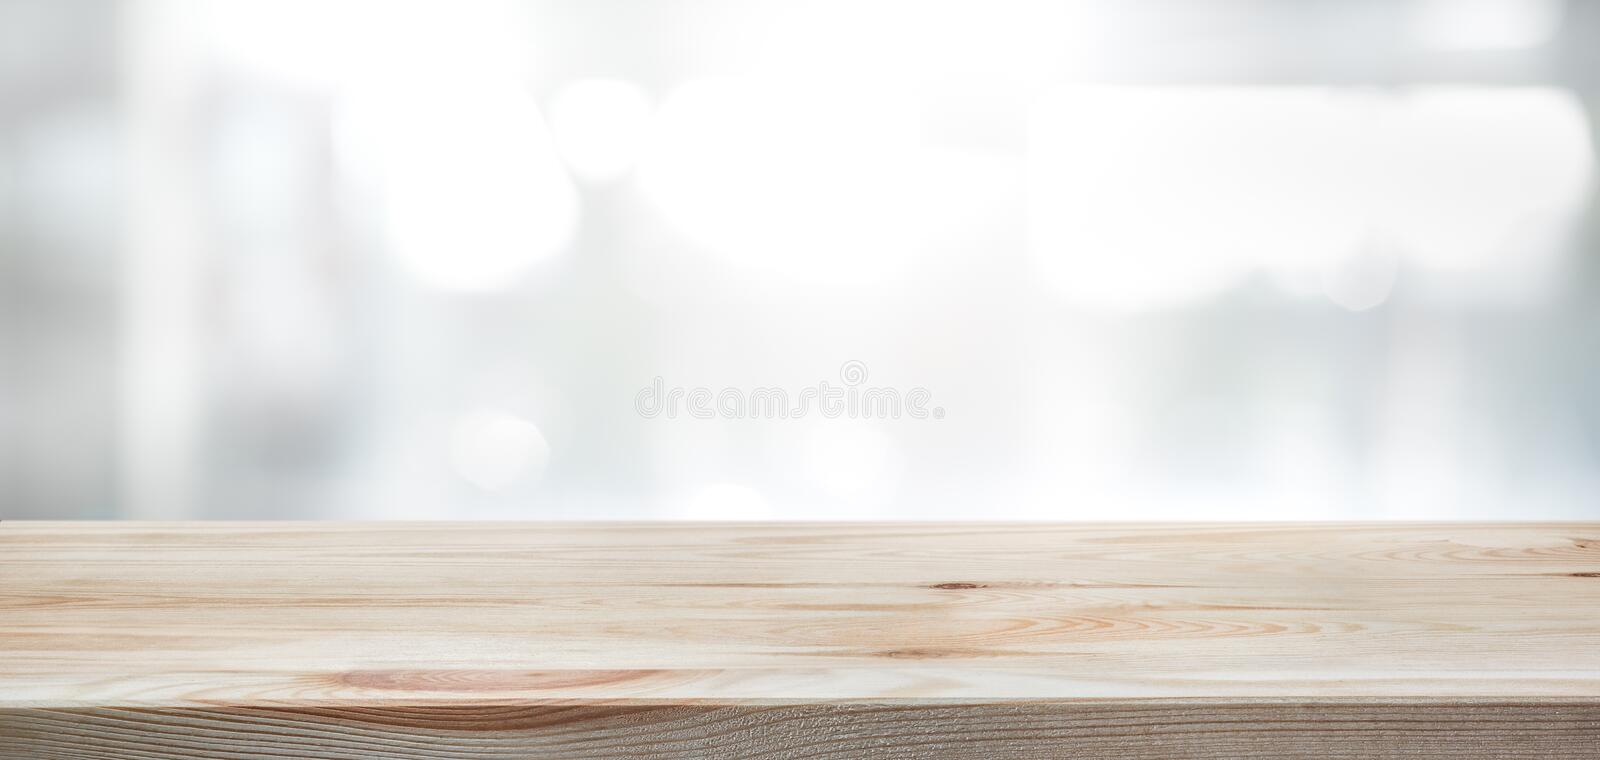 Merveilleux Download Wood Table Top On Blur Glass Window Wall Building Background.  Stock Photo   Image